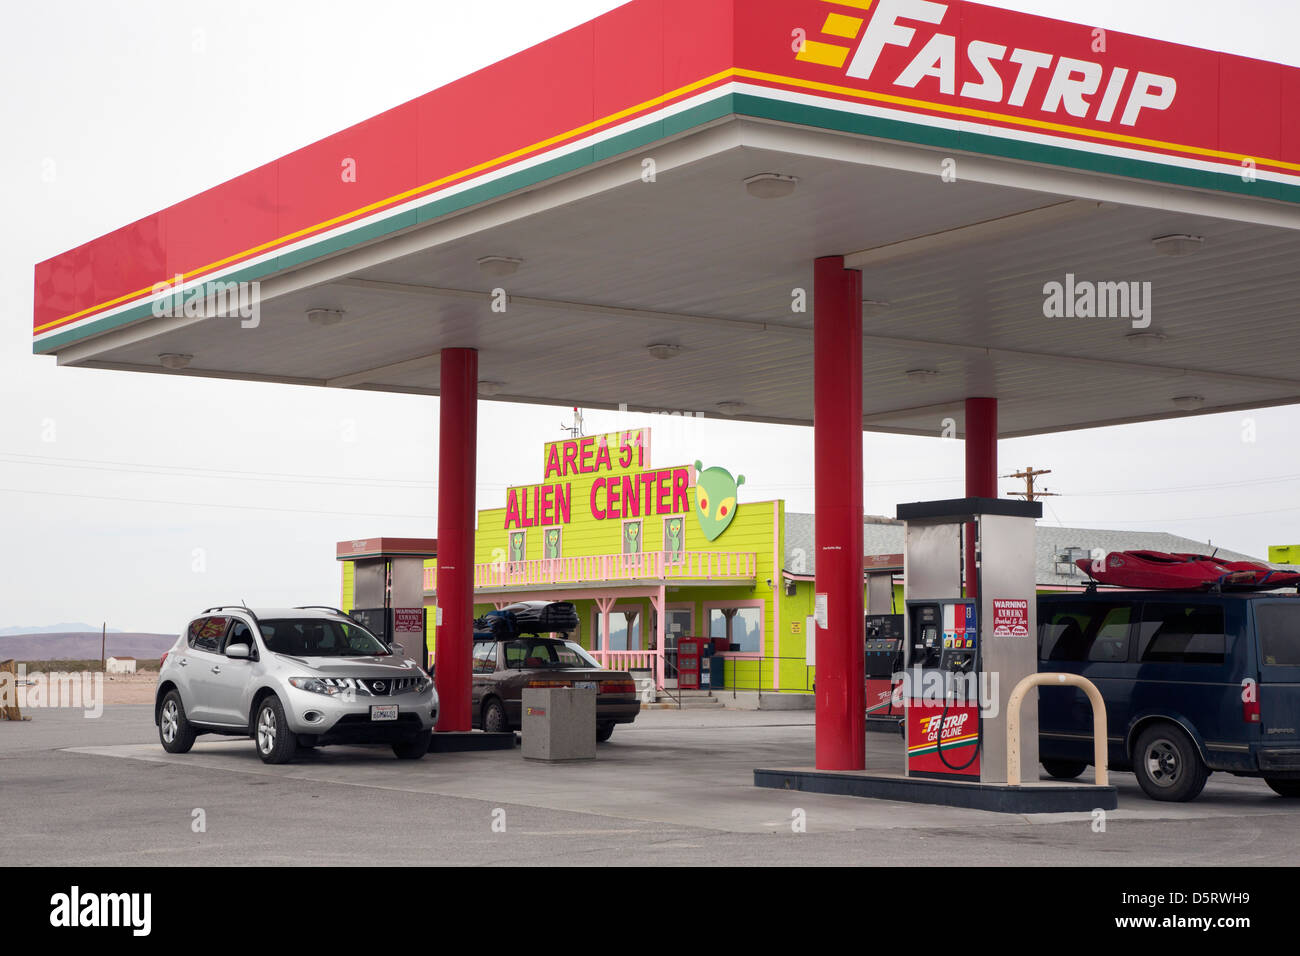 Amargosa Valley, Nevada - The Area 51 Alien Center at a gas station in the Nevada desert. Stock Photo